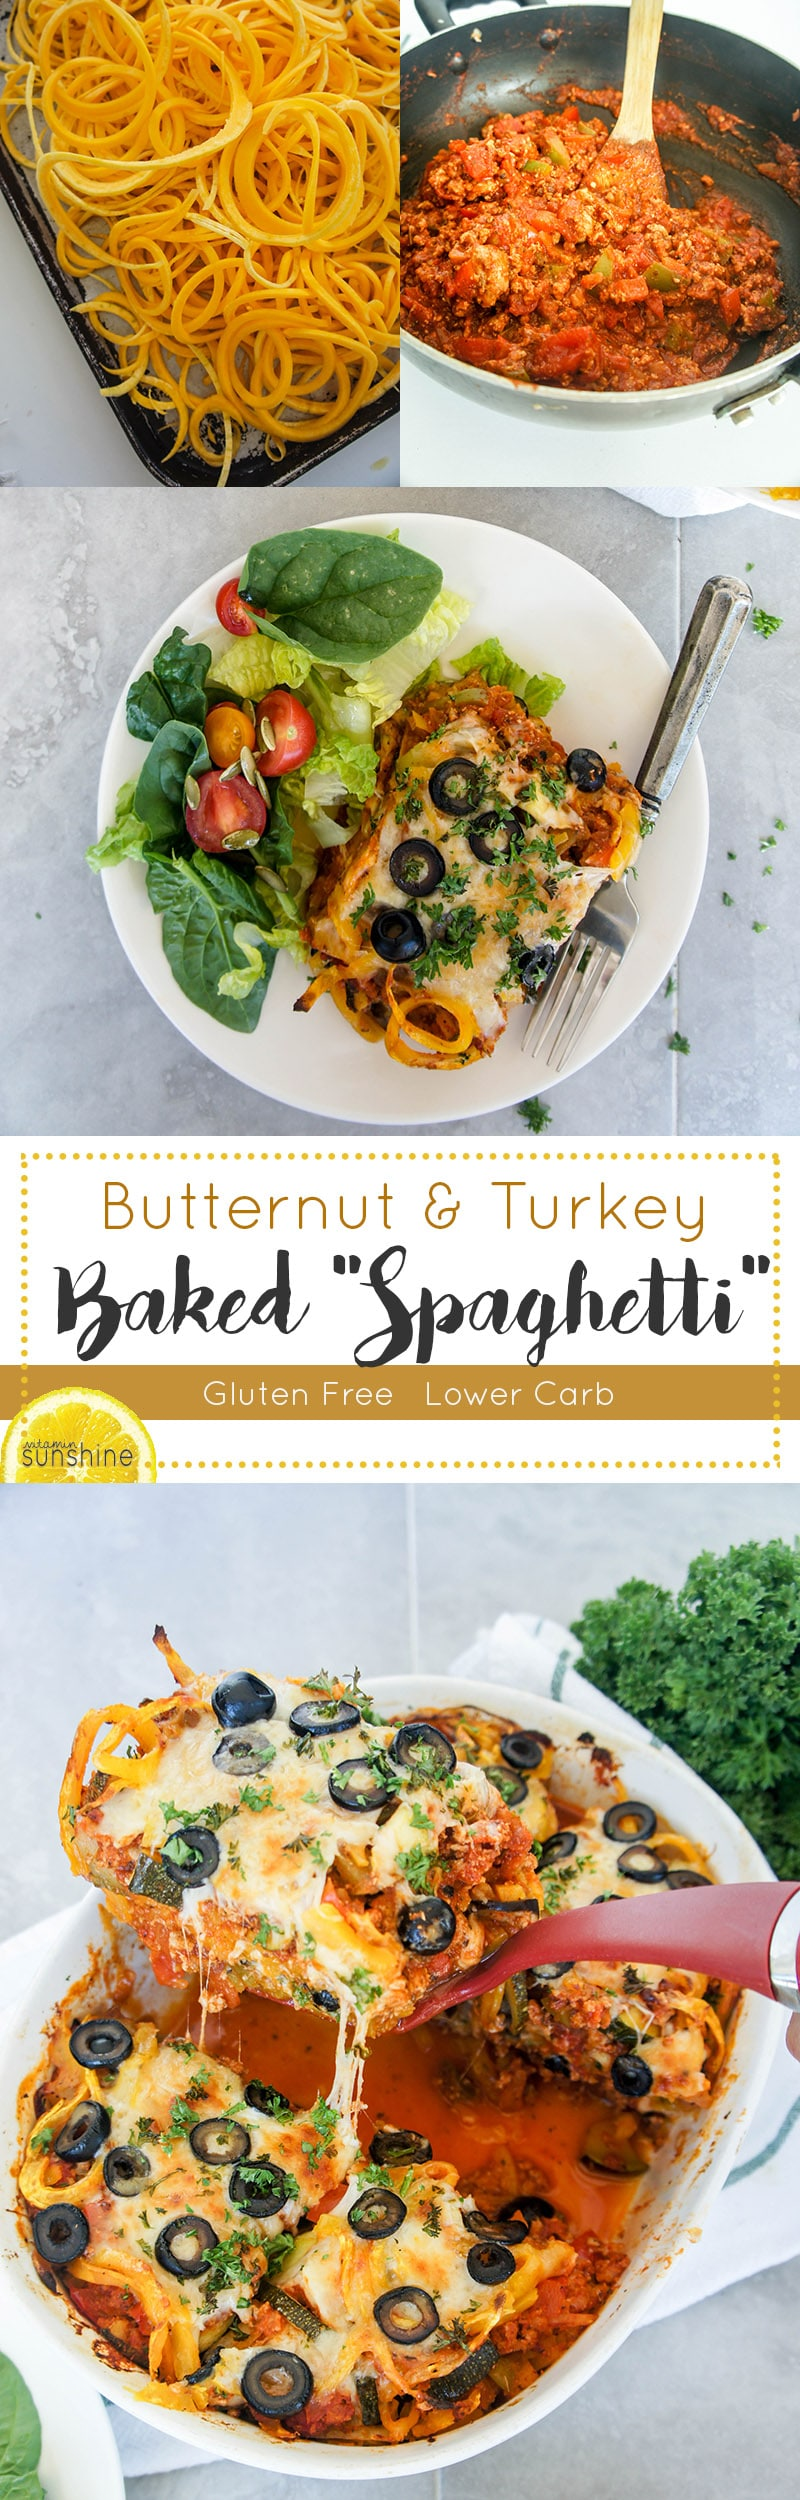 "Butternut and Turkey Baked ""Spaghetti"" / This warming and healthy fall meal calls for spiralized butternut squash instead of noodles!"